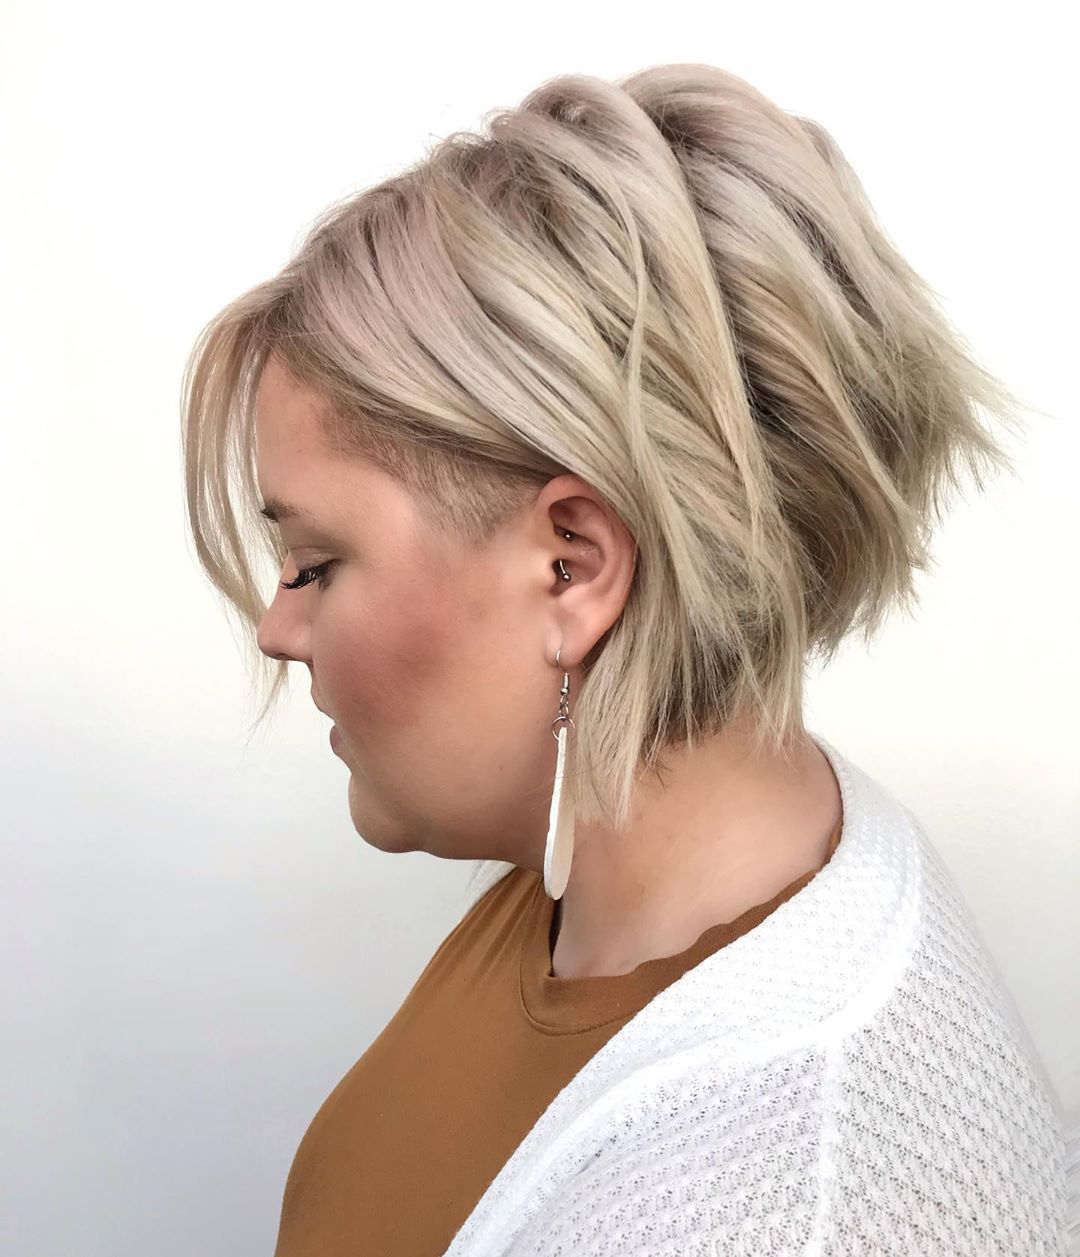 Pixie Haircut for Double Chins